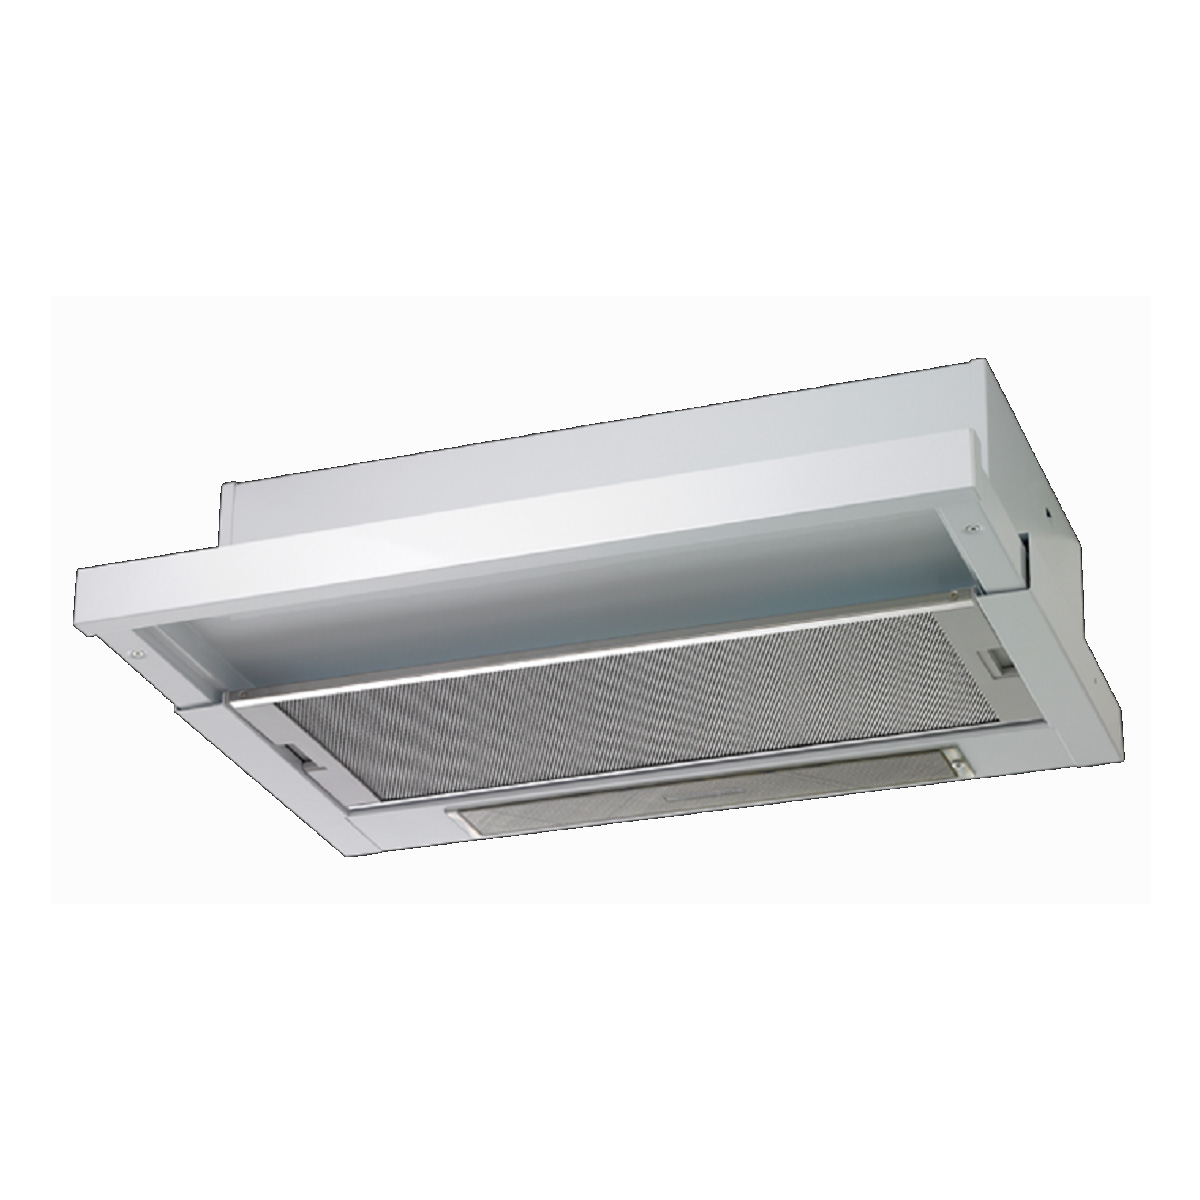 Chef Slide Out Rangehood REHR6W